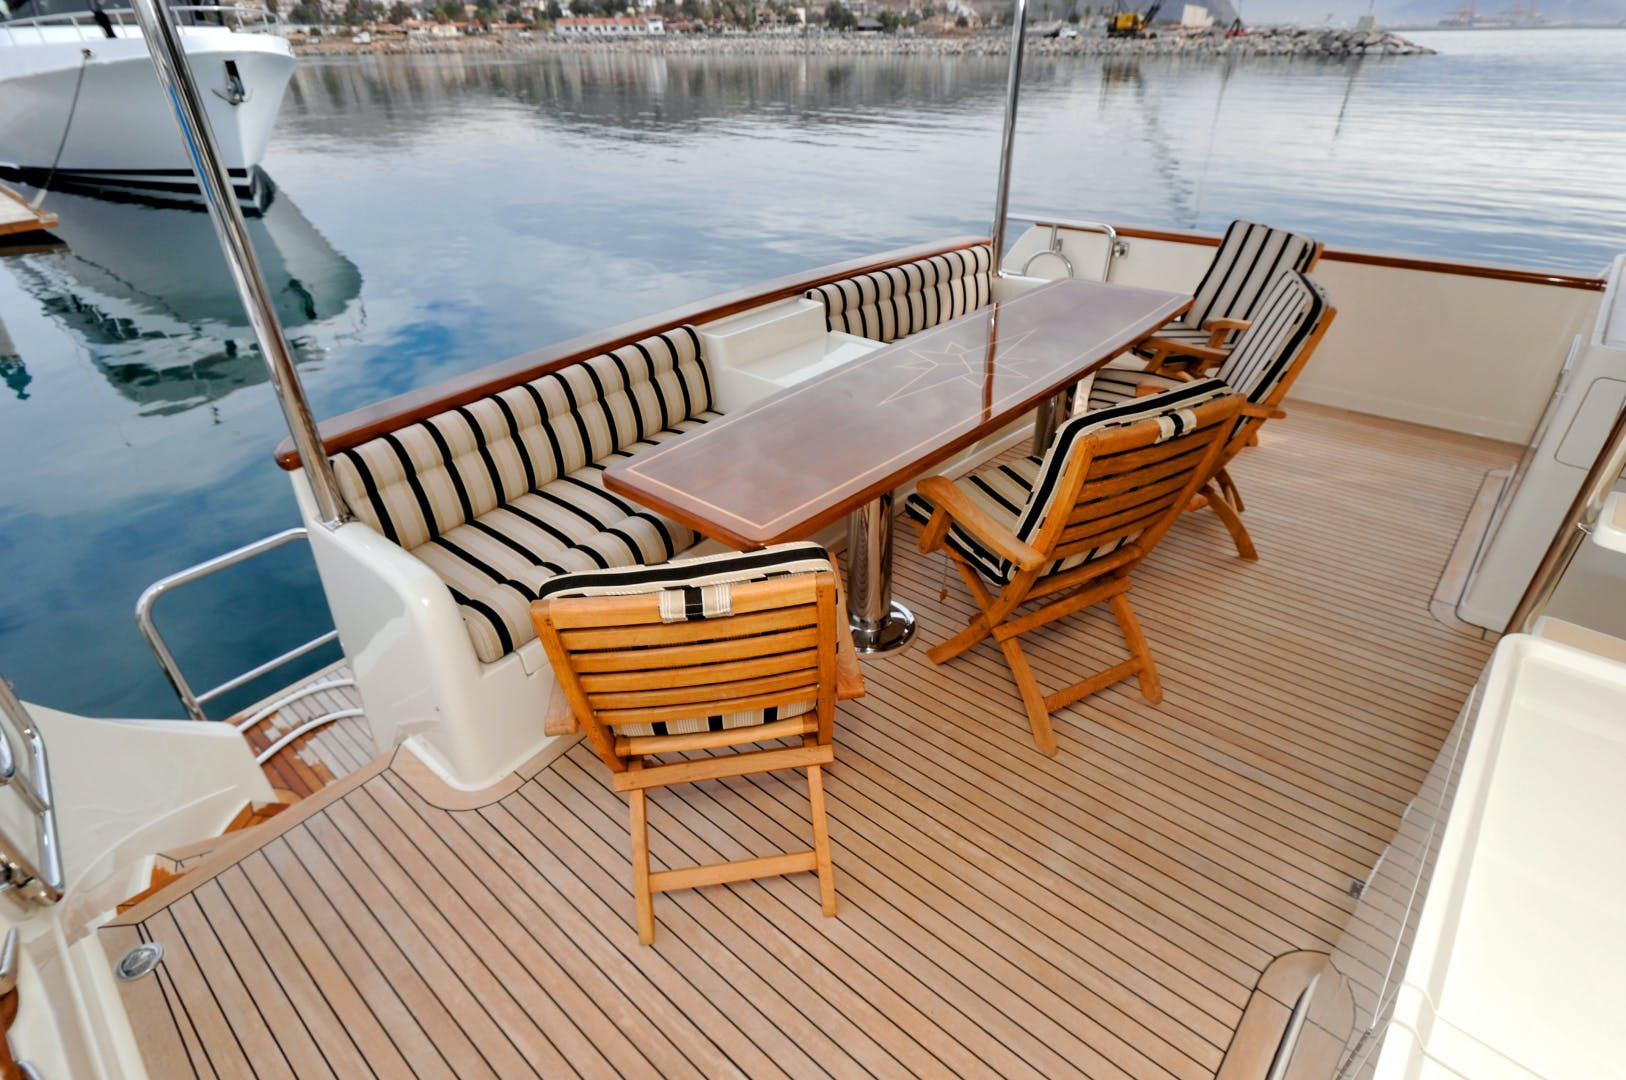 2020 Offshore Yachts 76' 76/80 Motoryacht    Picture 8 of 10